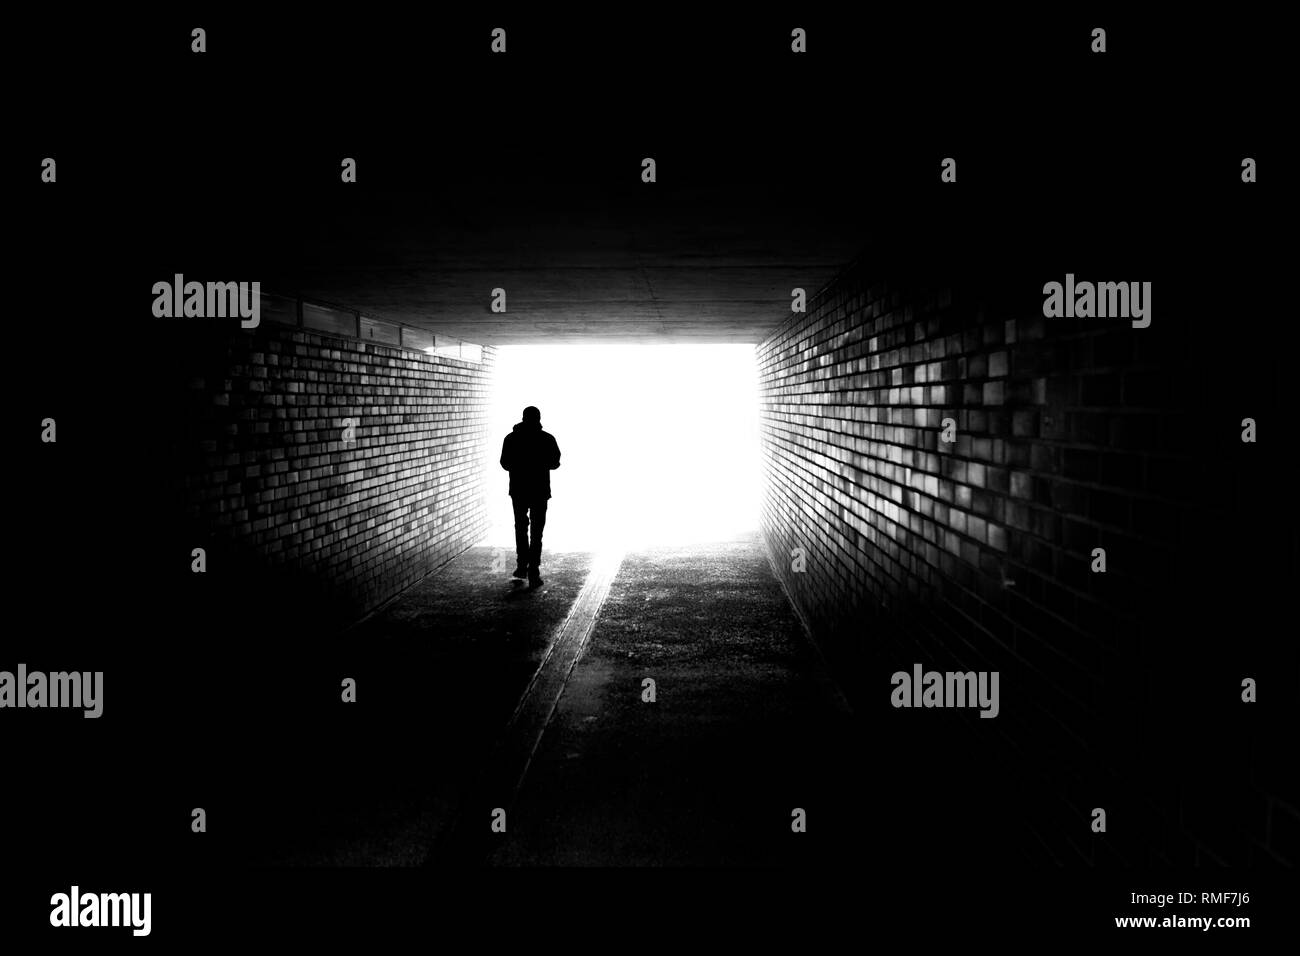 A man walking in a dark tunnel - Stock Image